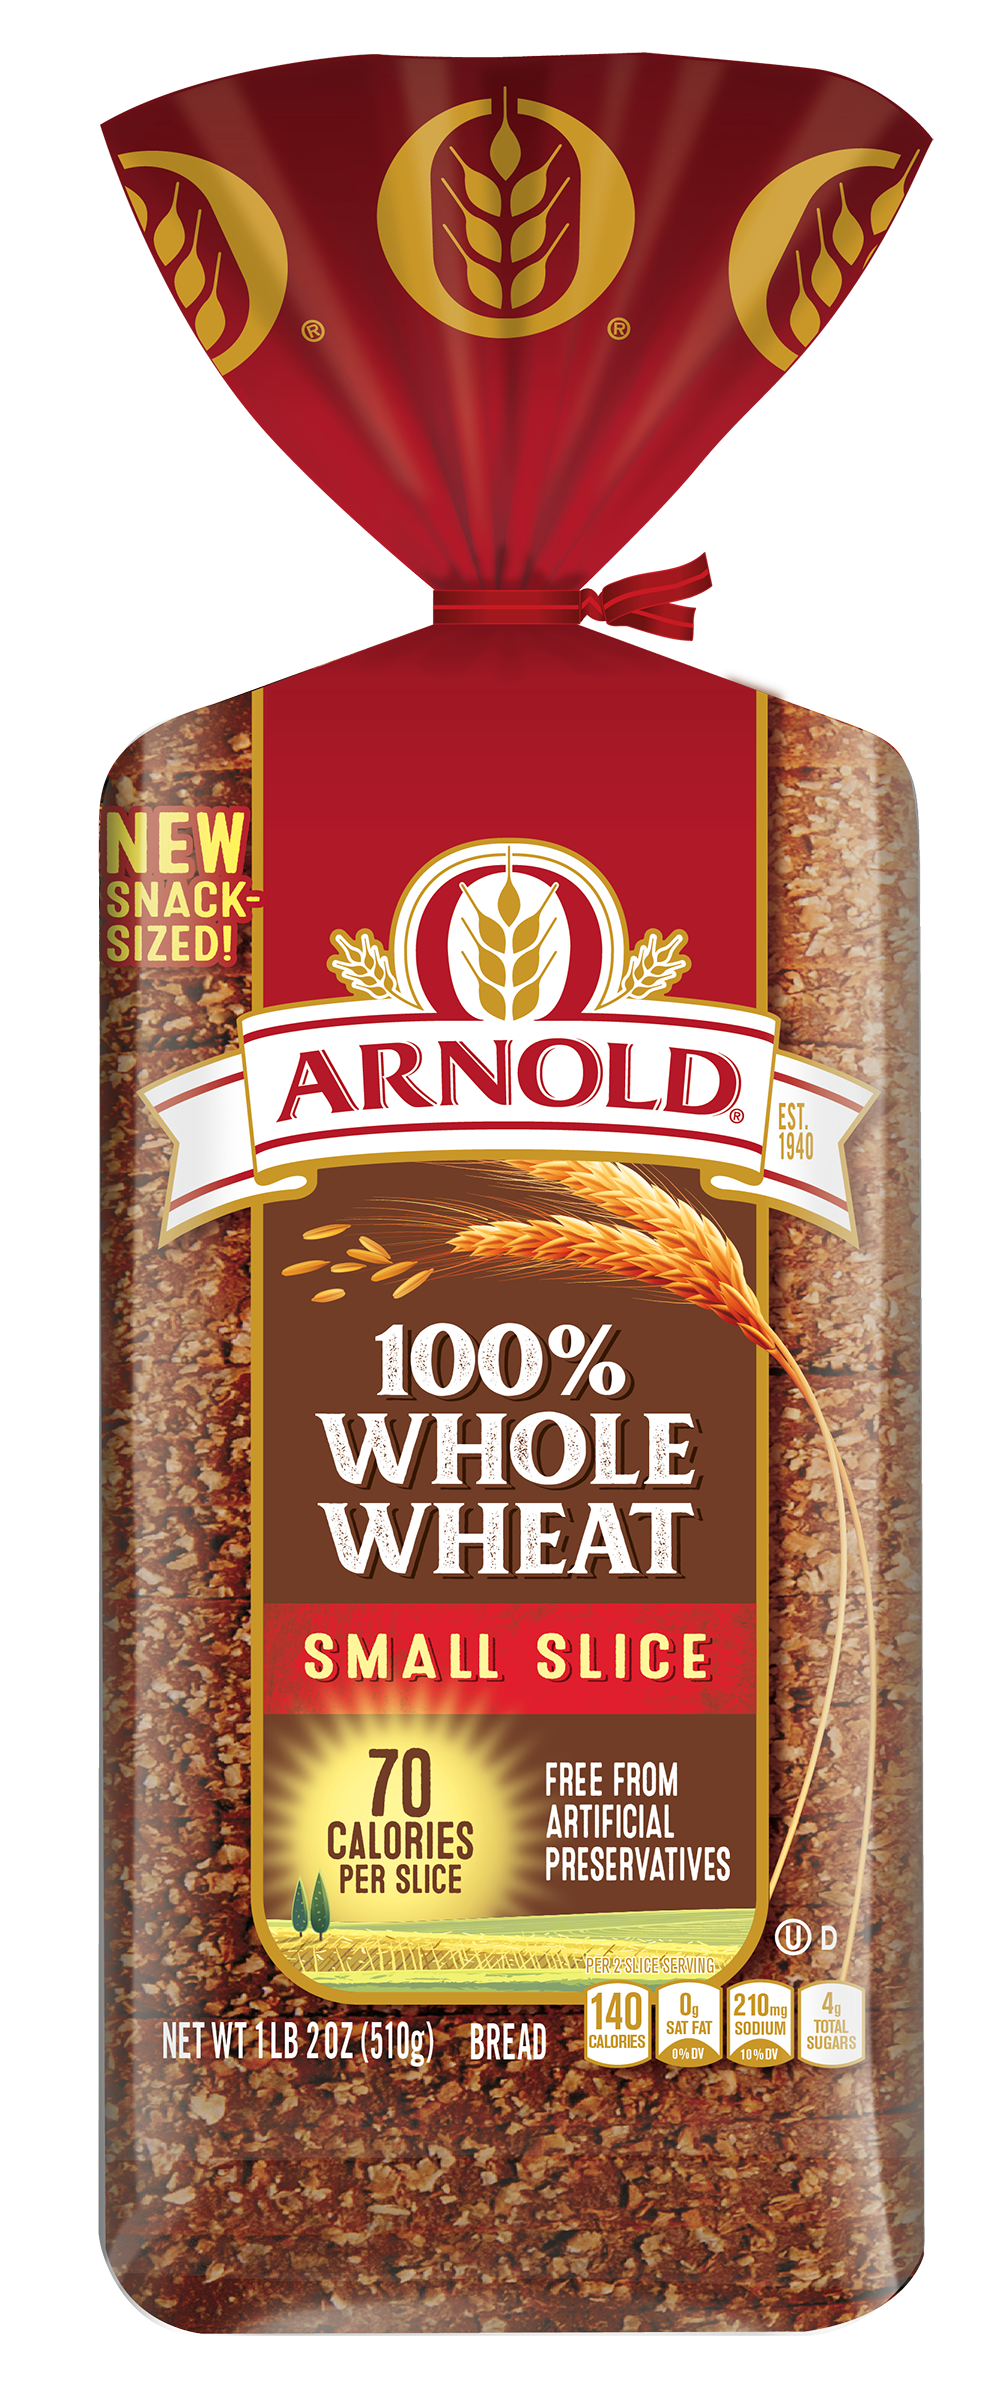 Arnold Small Slice 100% Whole Wheat 18oz Packaging